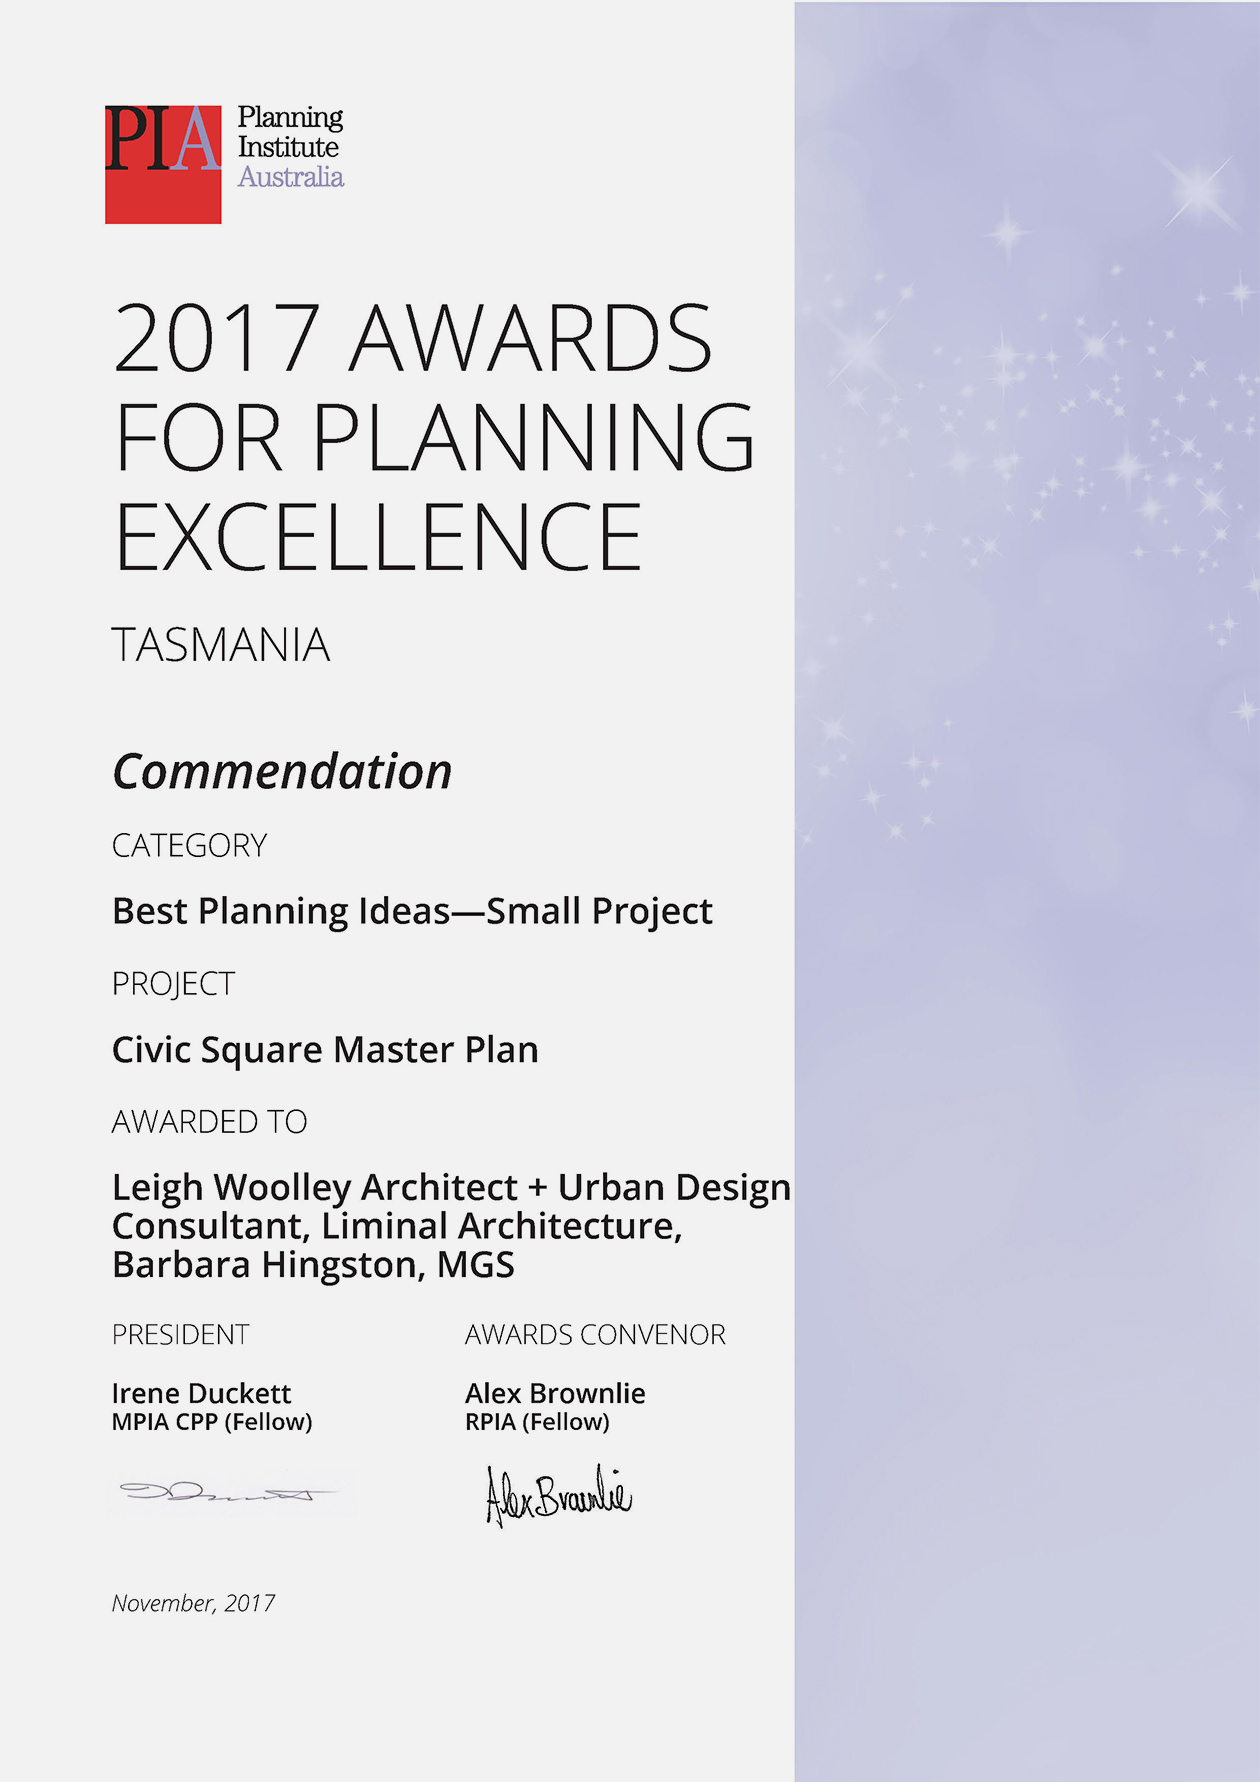 civic-square-master-plan-commendation-pia-awards-2017-tasmania